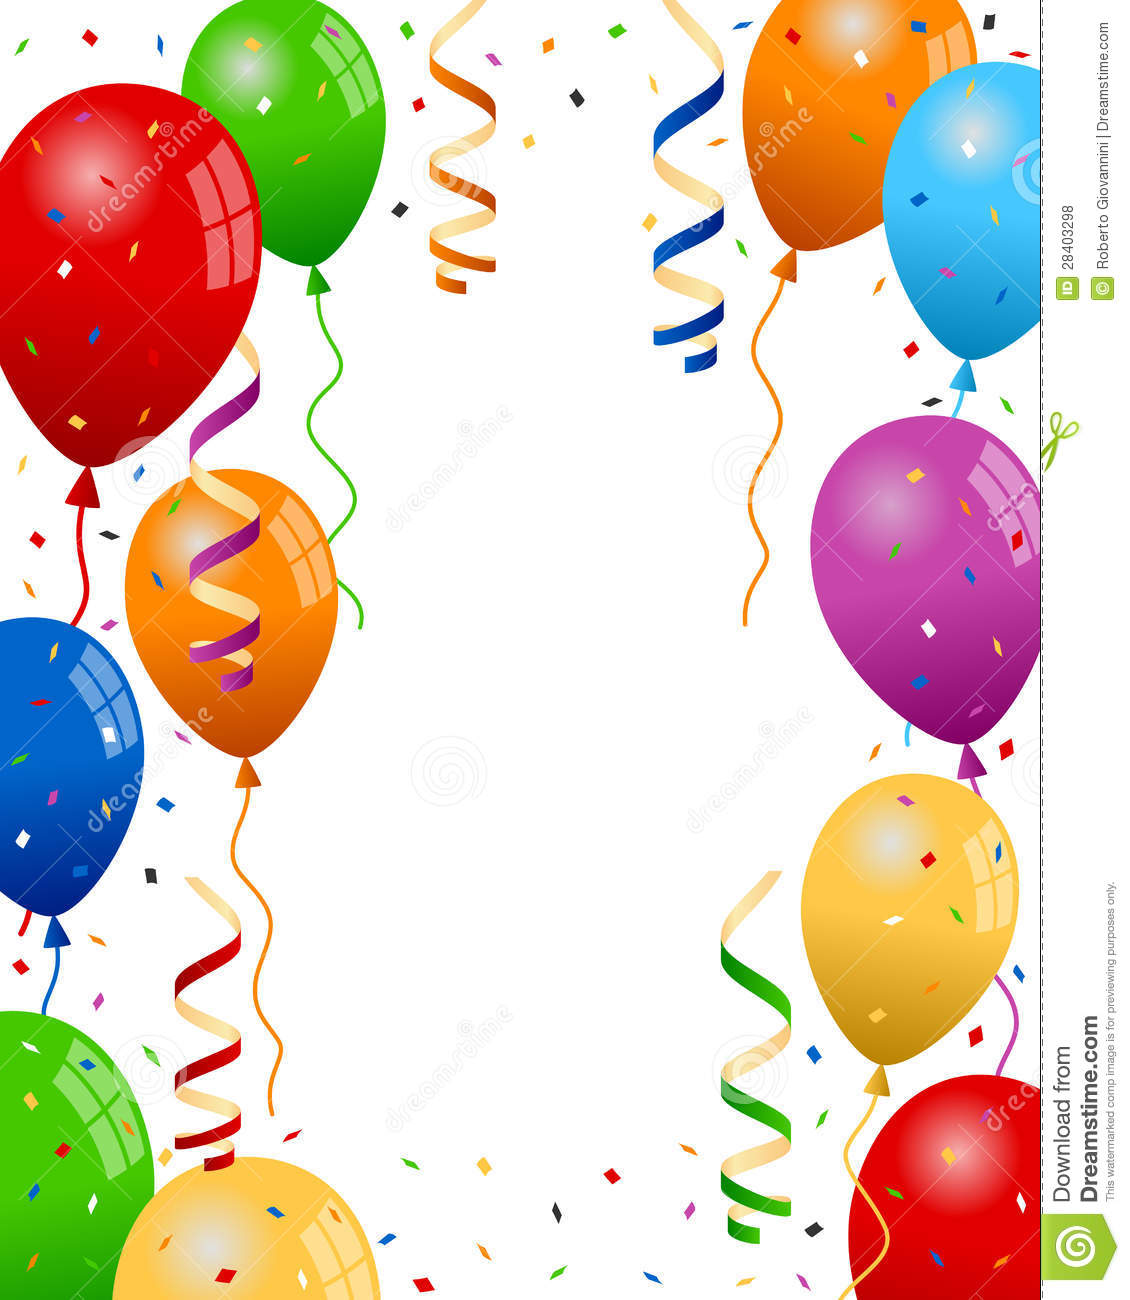 clipart balloons and streamers - photo #25